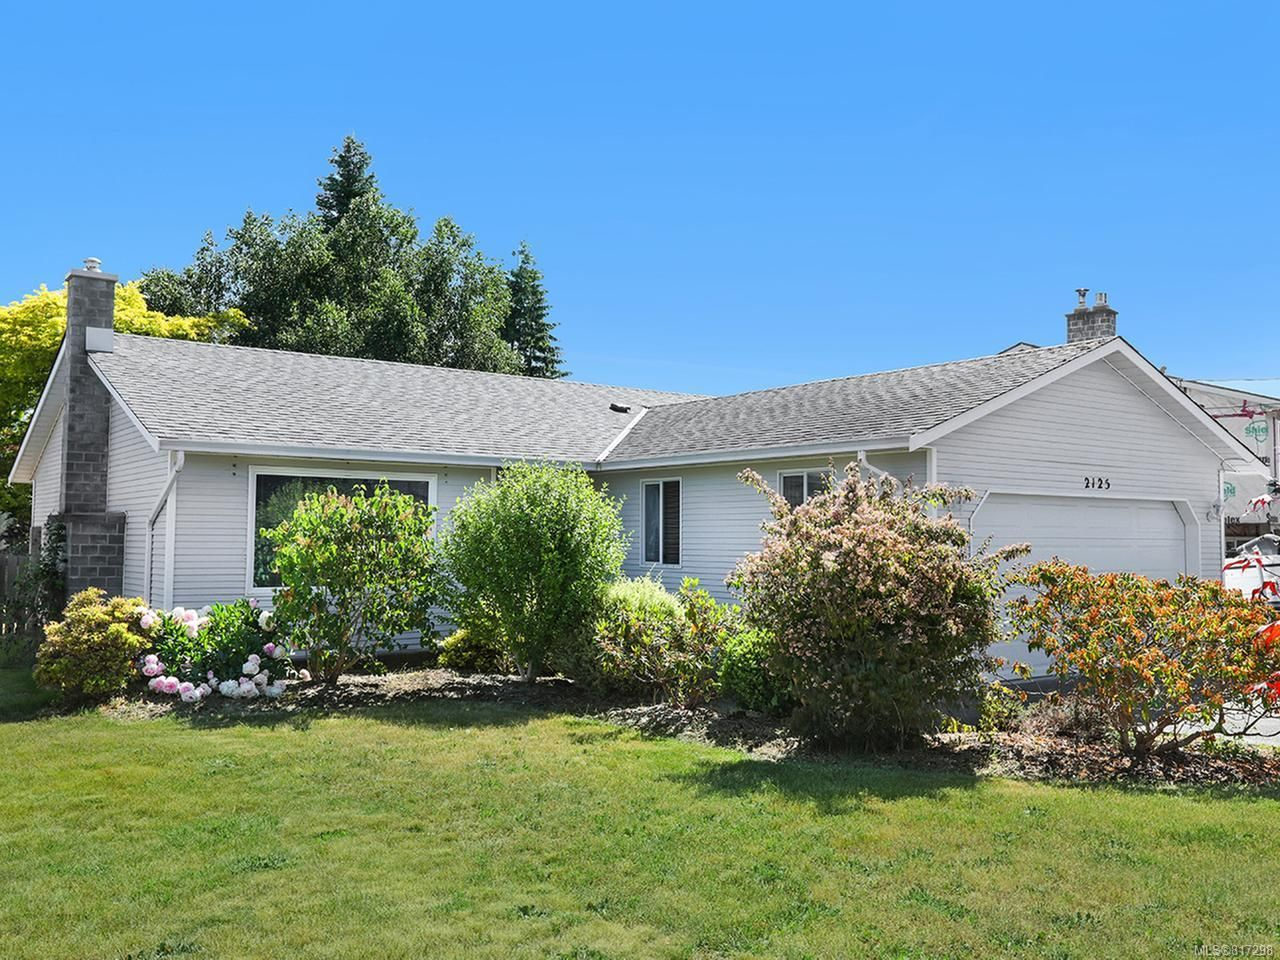 Main Photo: 2125 Eardley Rd in CAMPBELL RIVER: CR Willow Point House for sale (Campbell River)  : MLS®# 817298